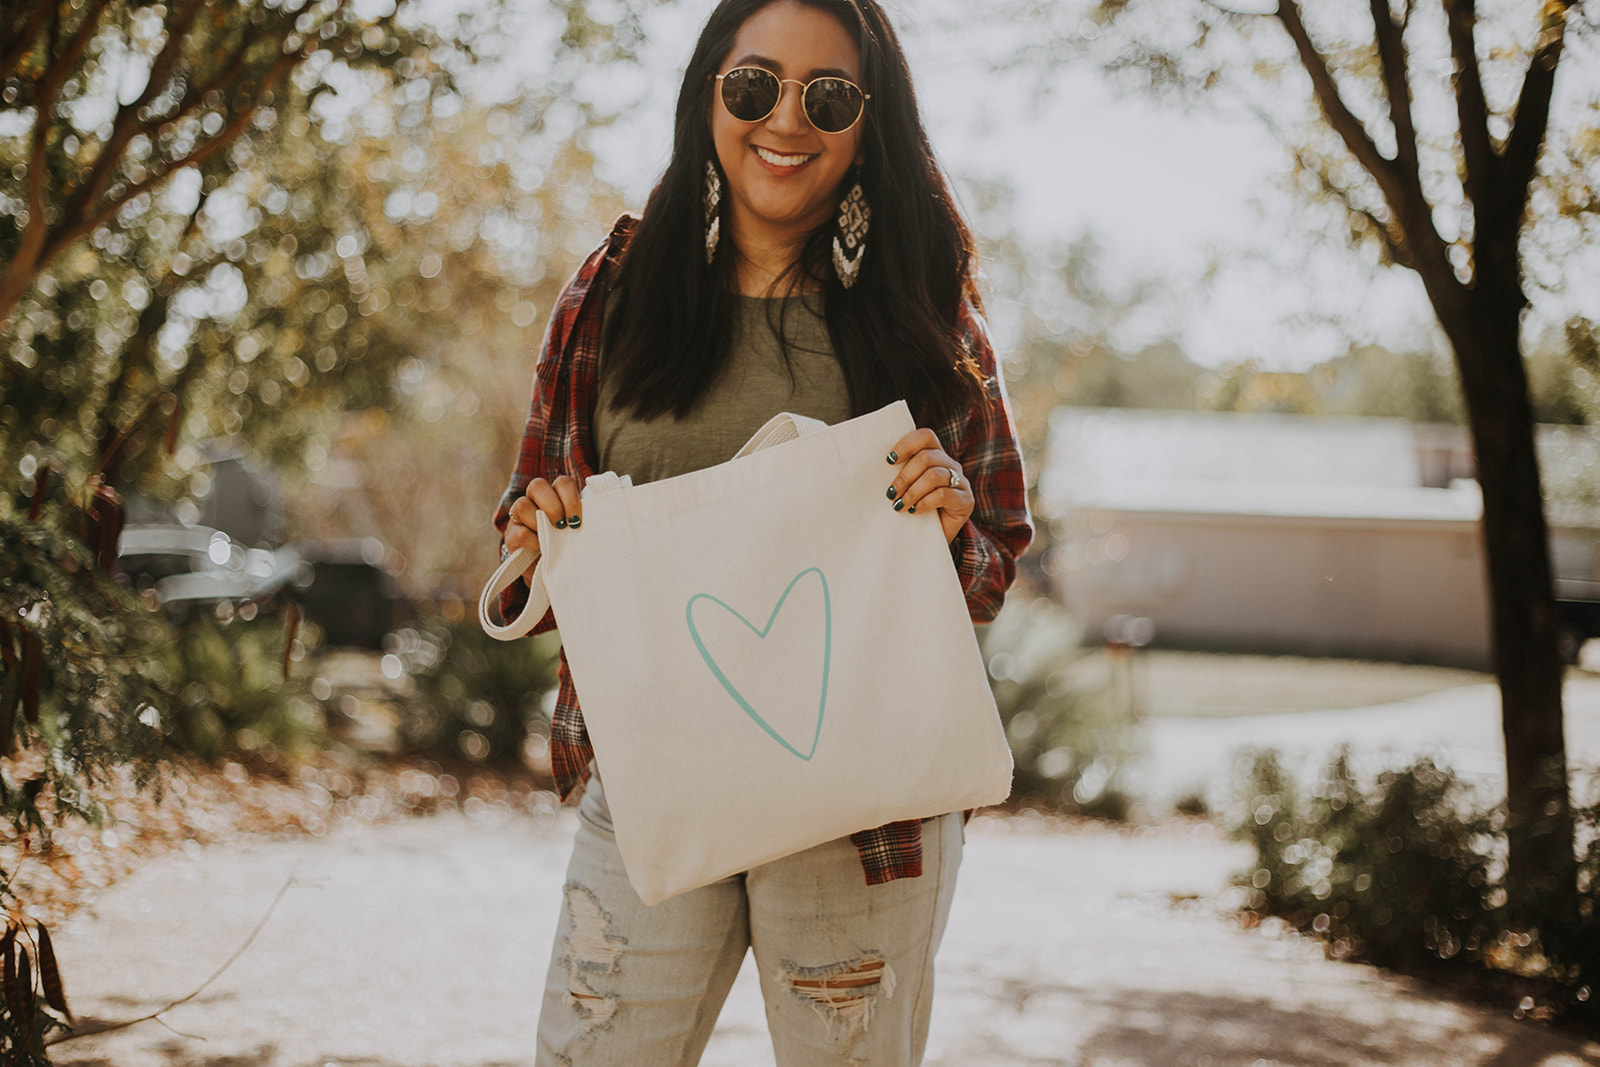 Smiling latina creative, Mary-Beth from Heart of Celebration, wearing dangly earrings and plaid shirt holding a tote bag with a blue heart on it representing the Radical Wed Retreat